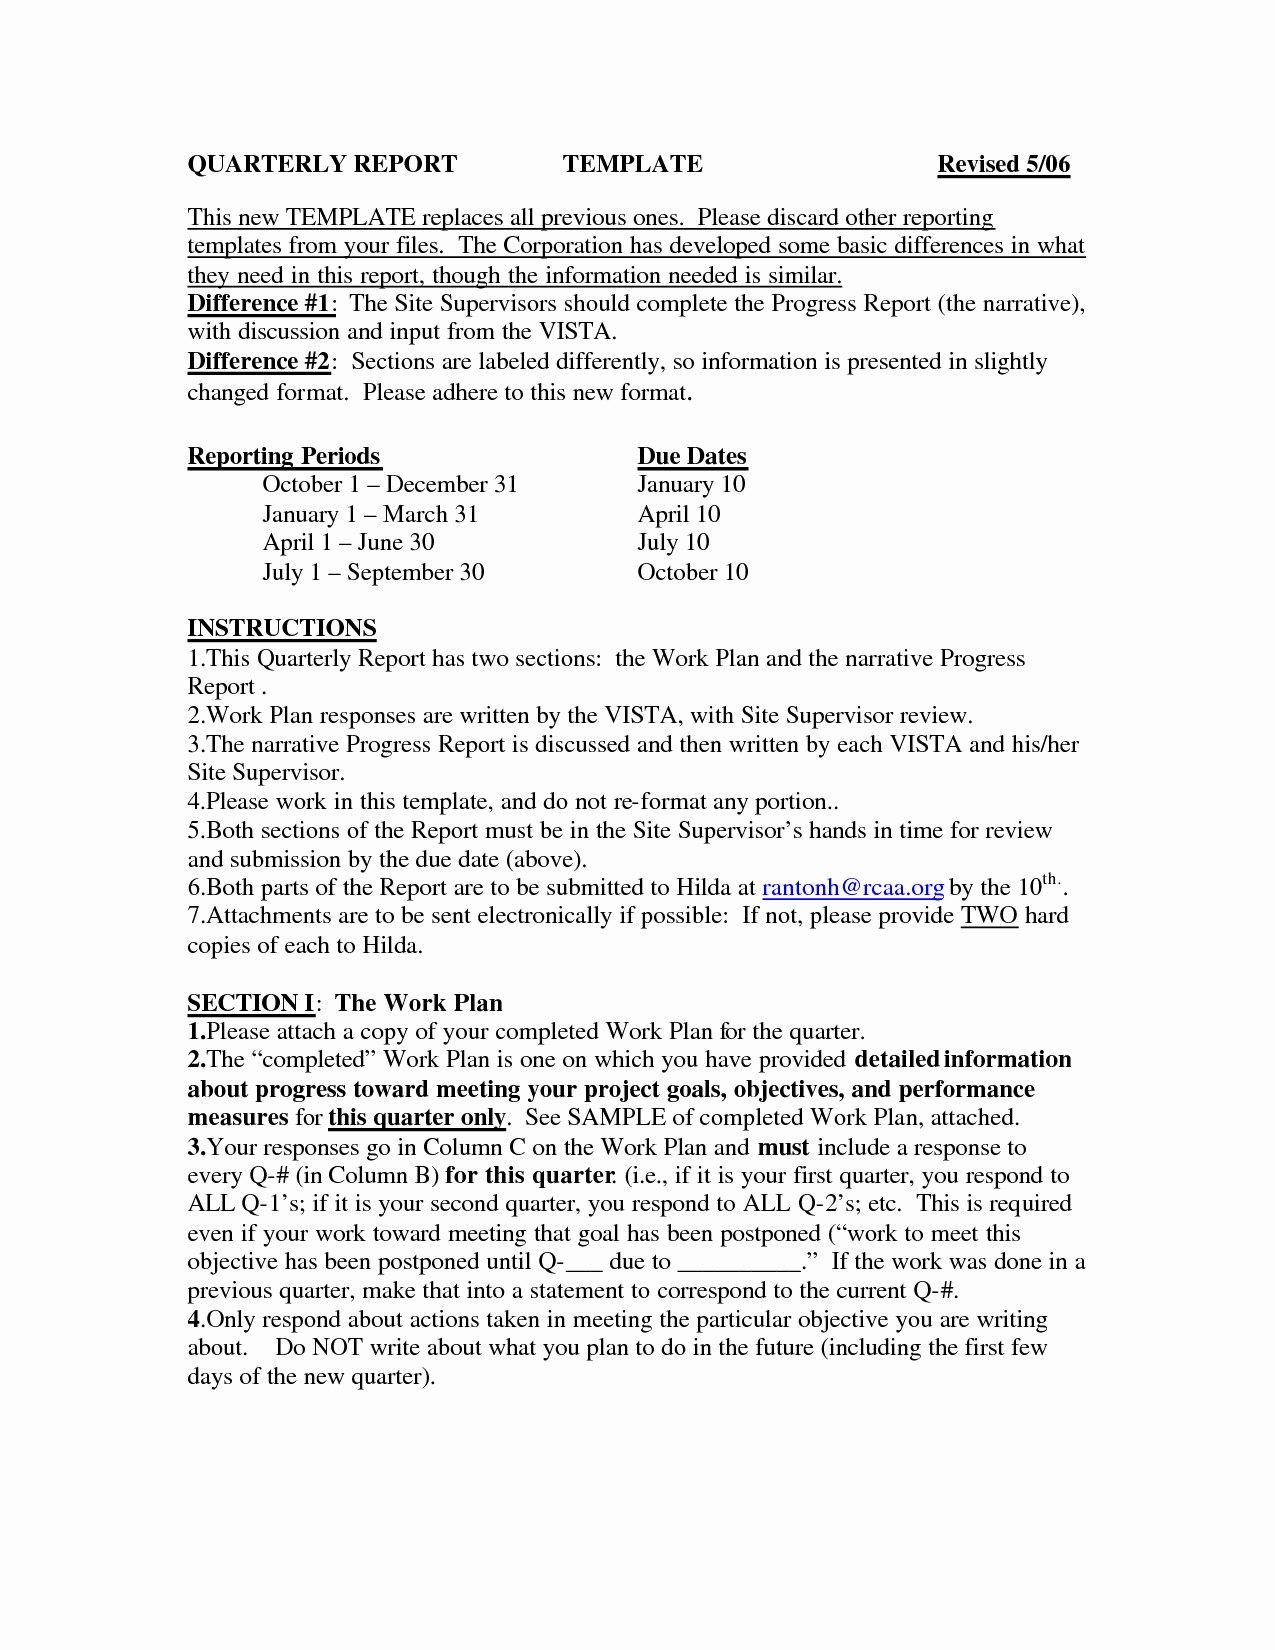 Business Report Template Word Unique Business Report Template